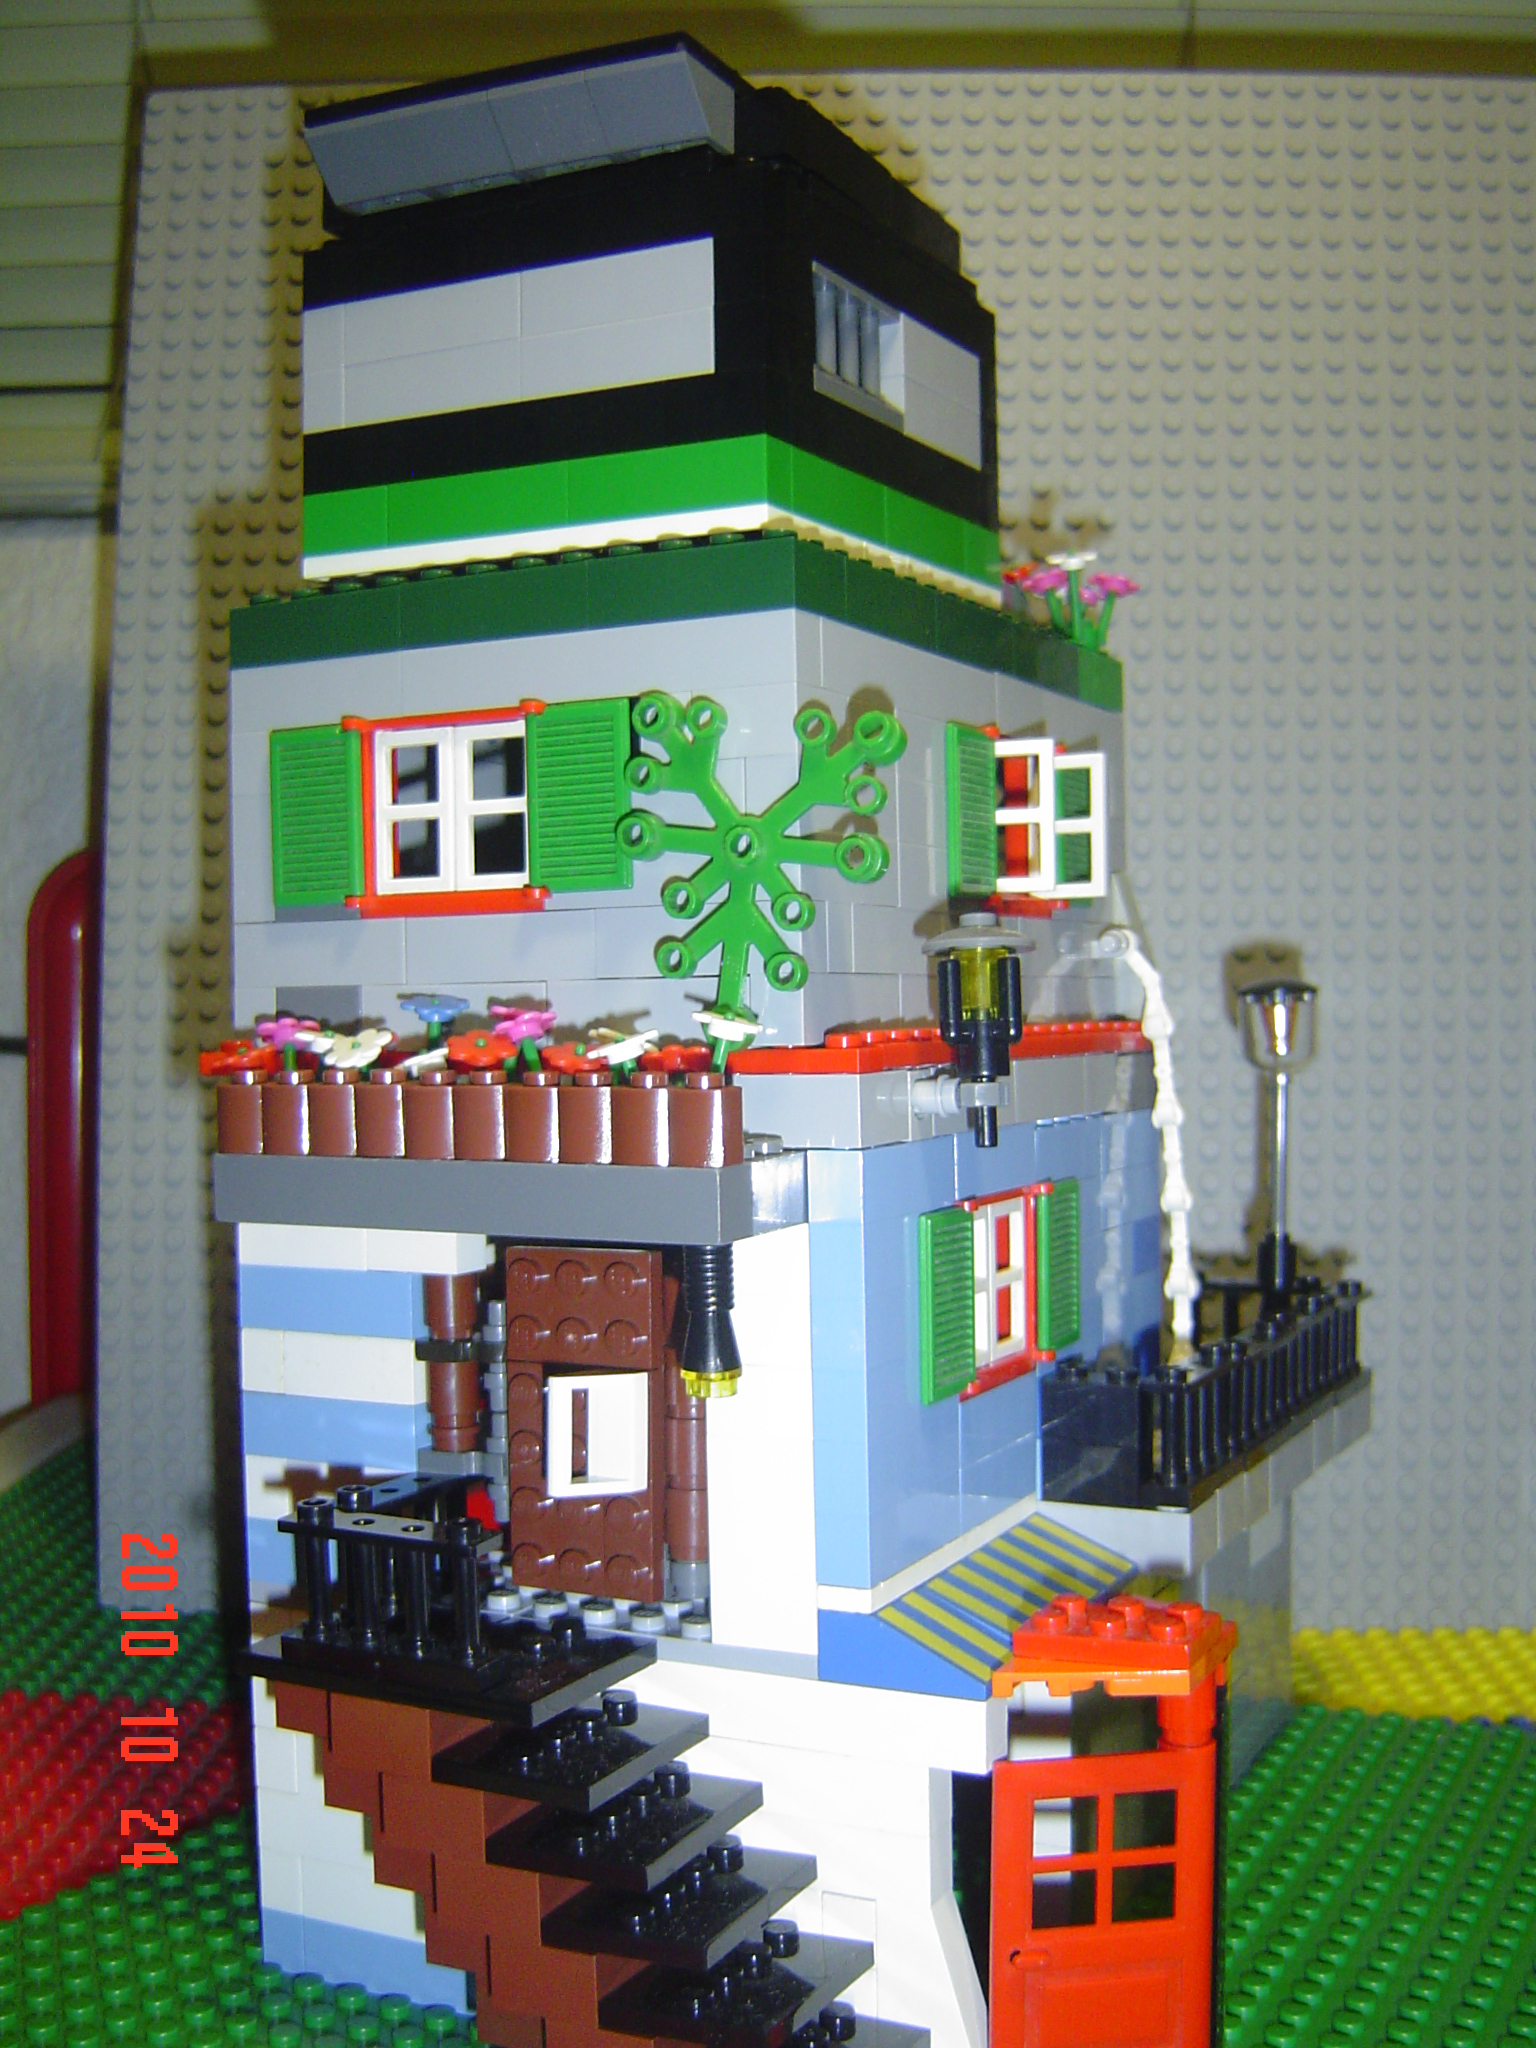 lego_city_home_002.jpg